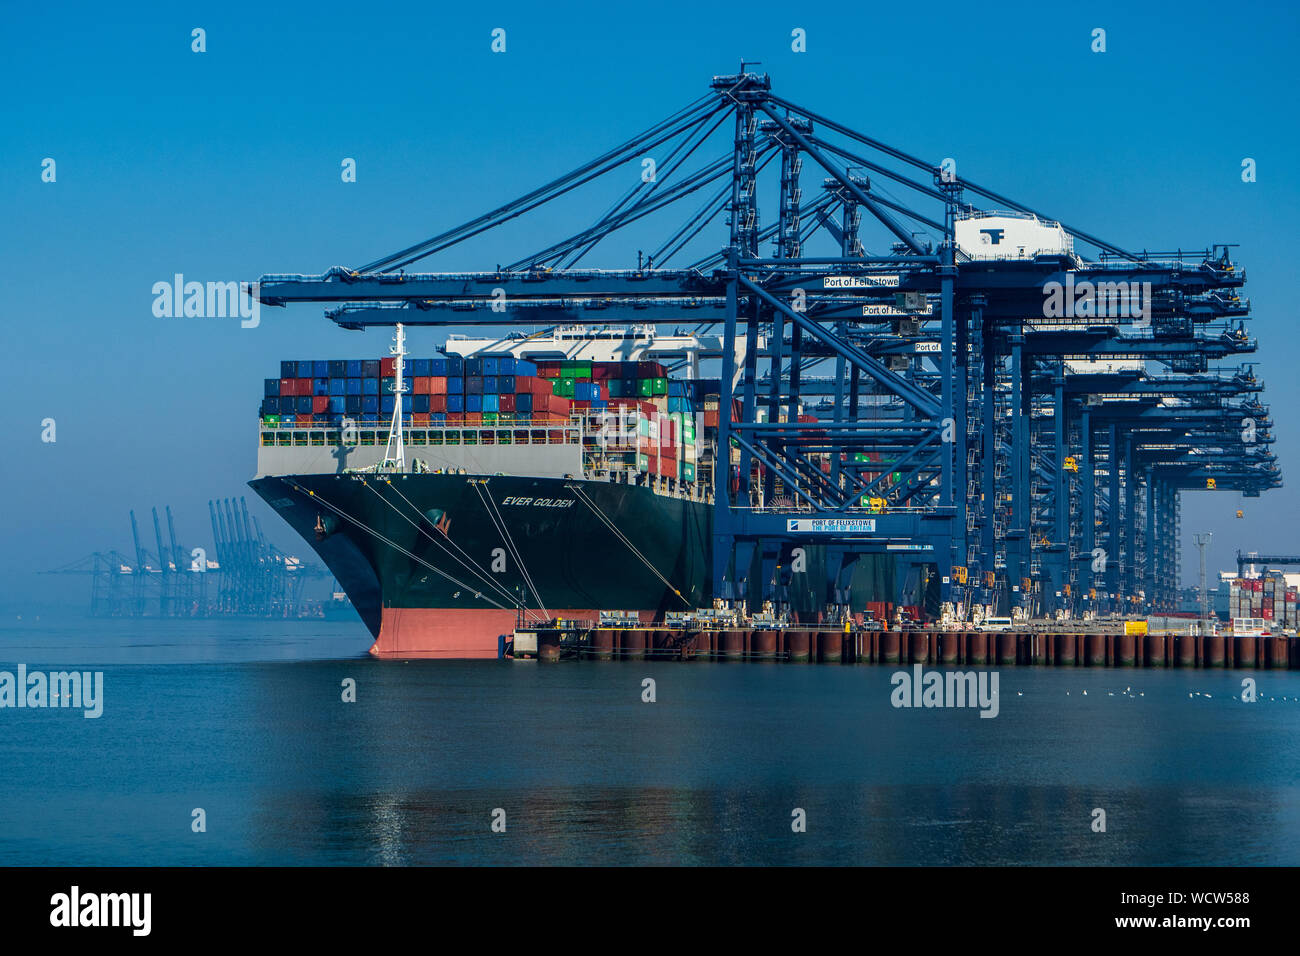 Global Britain - UK Trade at Felixstowe Container Port - The Ever Golden Container Ship unloads cargo at the Port of Felixstowe  UK Stock Photo